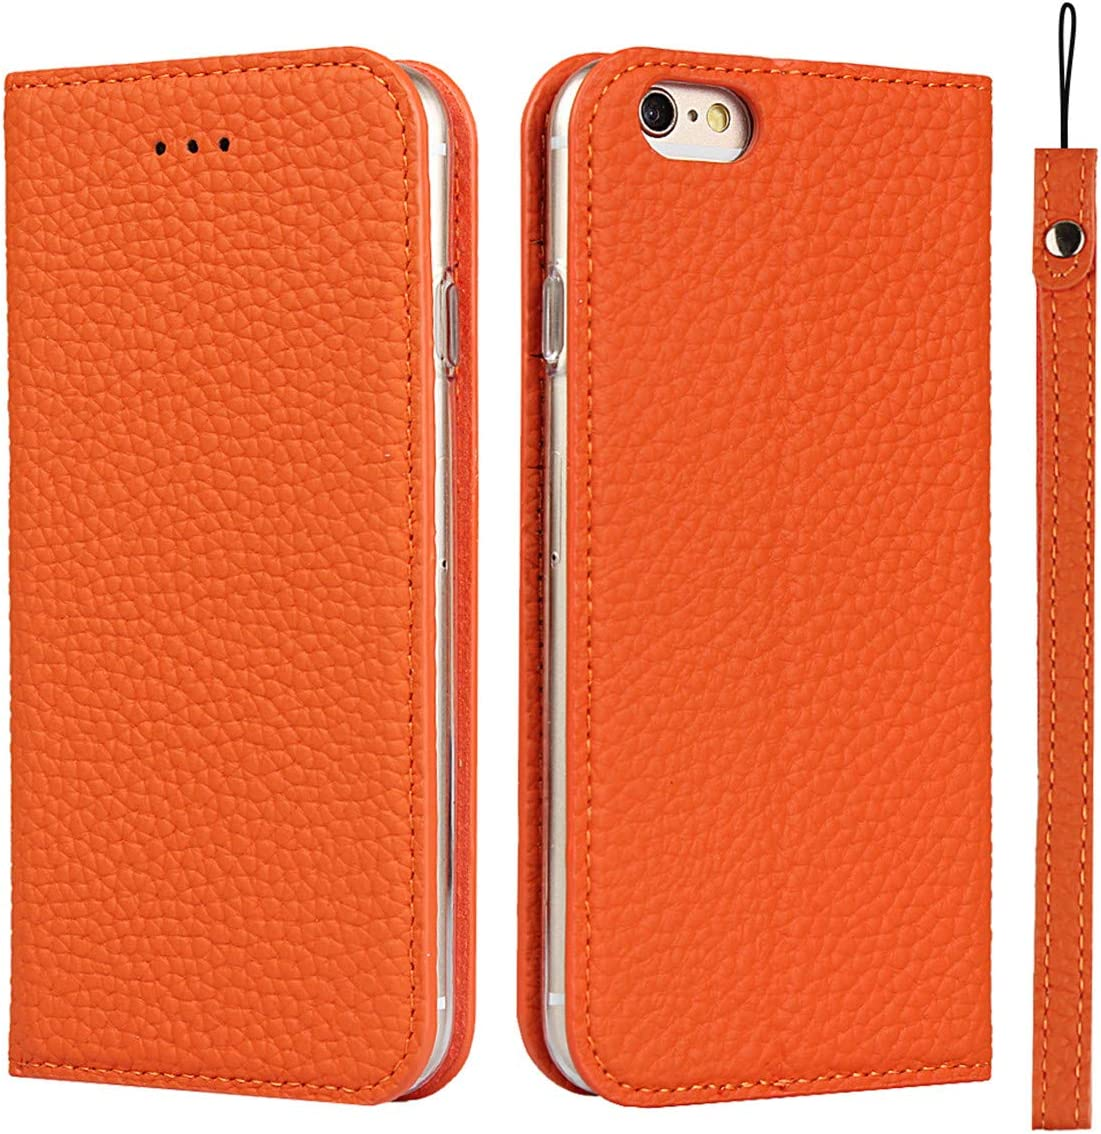 iCoverCase Genuine Leather Case for iPhone 6s Plus/iPhone 6 Plus, Wallet Case with Wrist Strap and Card Slots Magnetic Closure Kickstand Feature Flip Cover for iPhone 6s Plus/6 Plus (Orange)